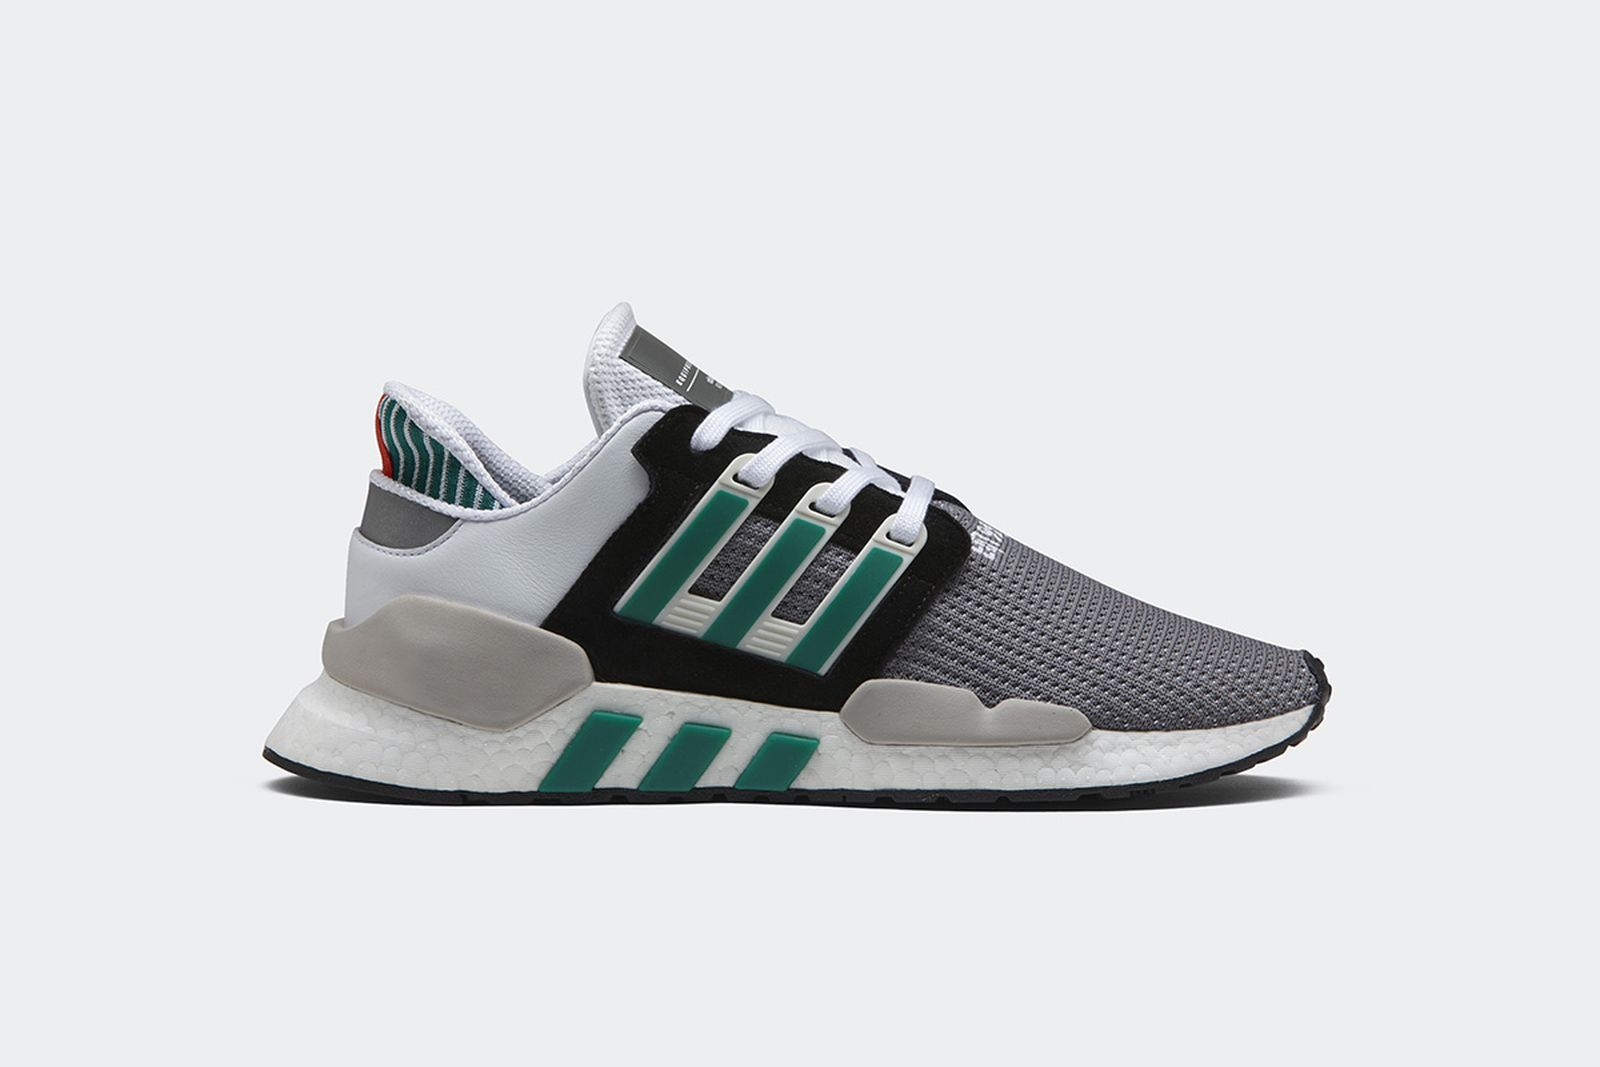 adidas EQT Support 91/18: Release Date, Price, & More Info